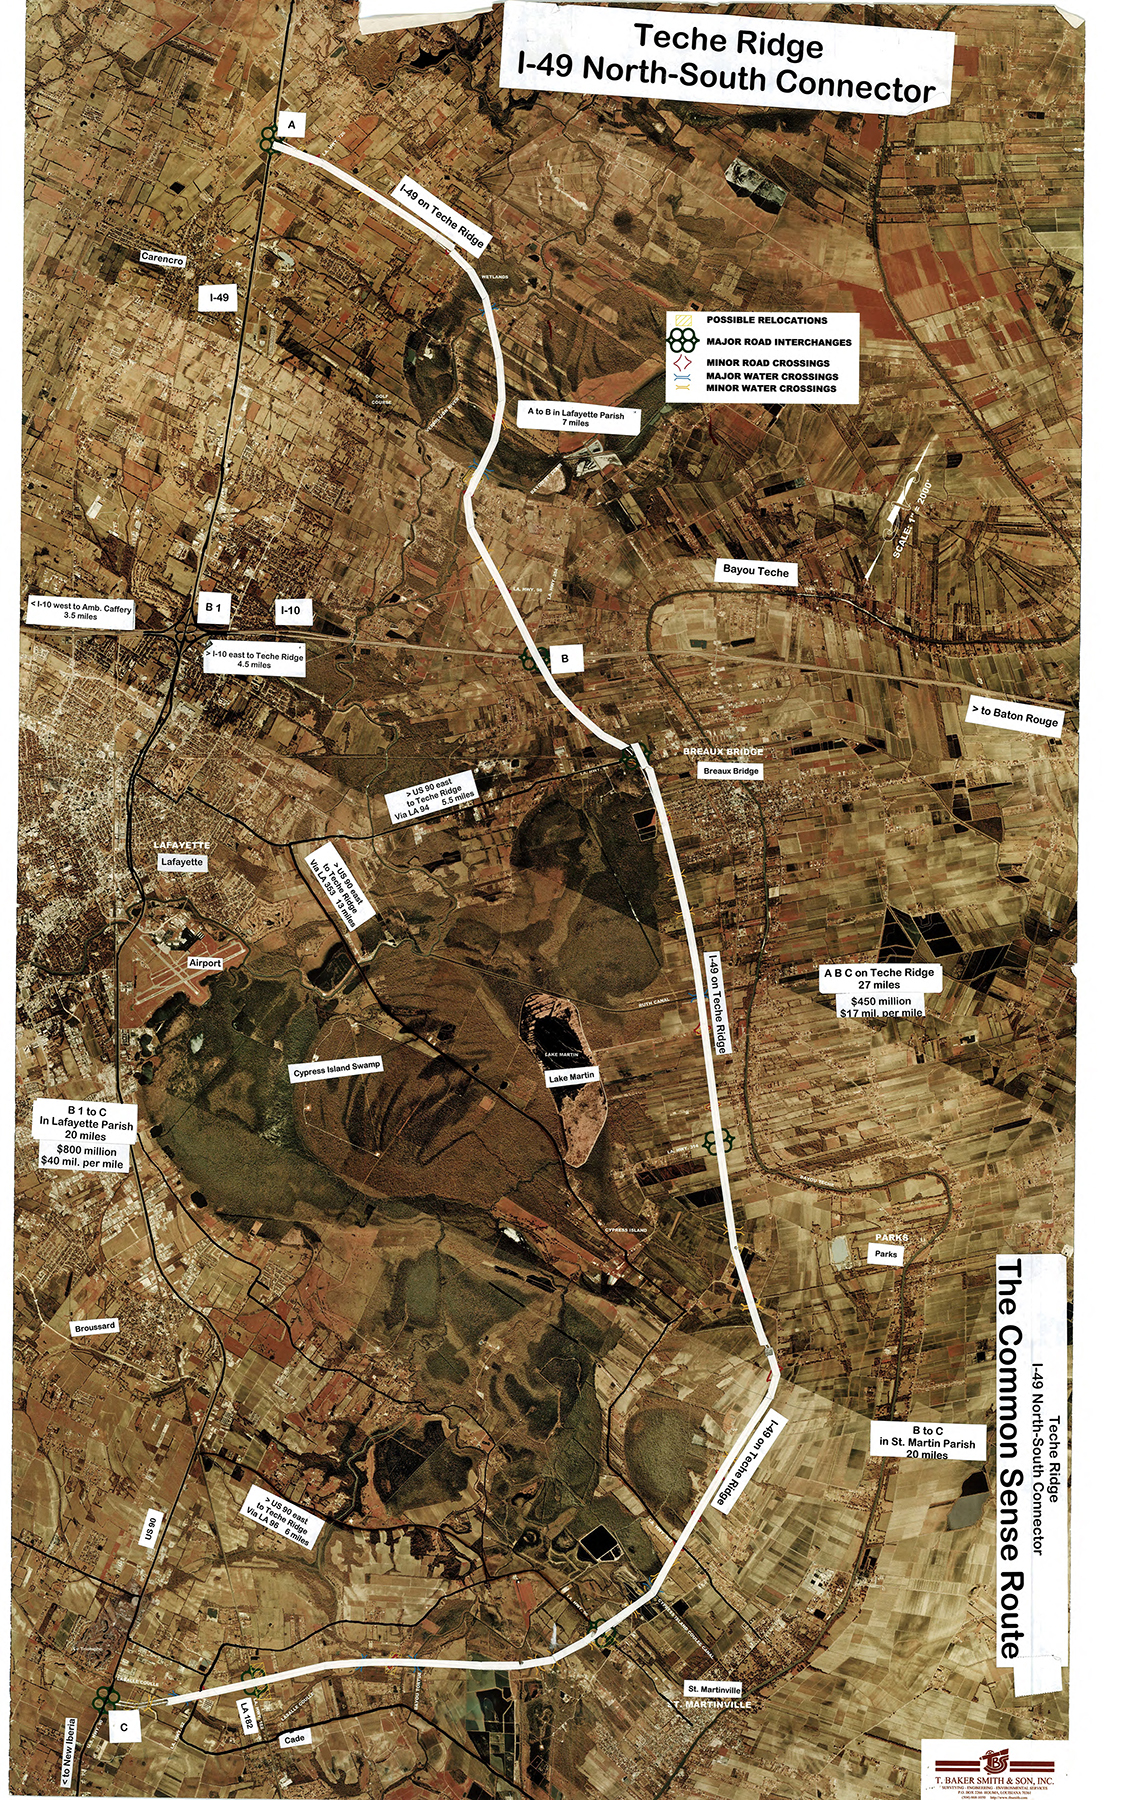 View a copy of the map for